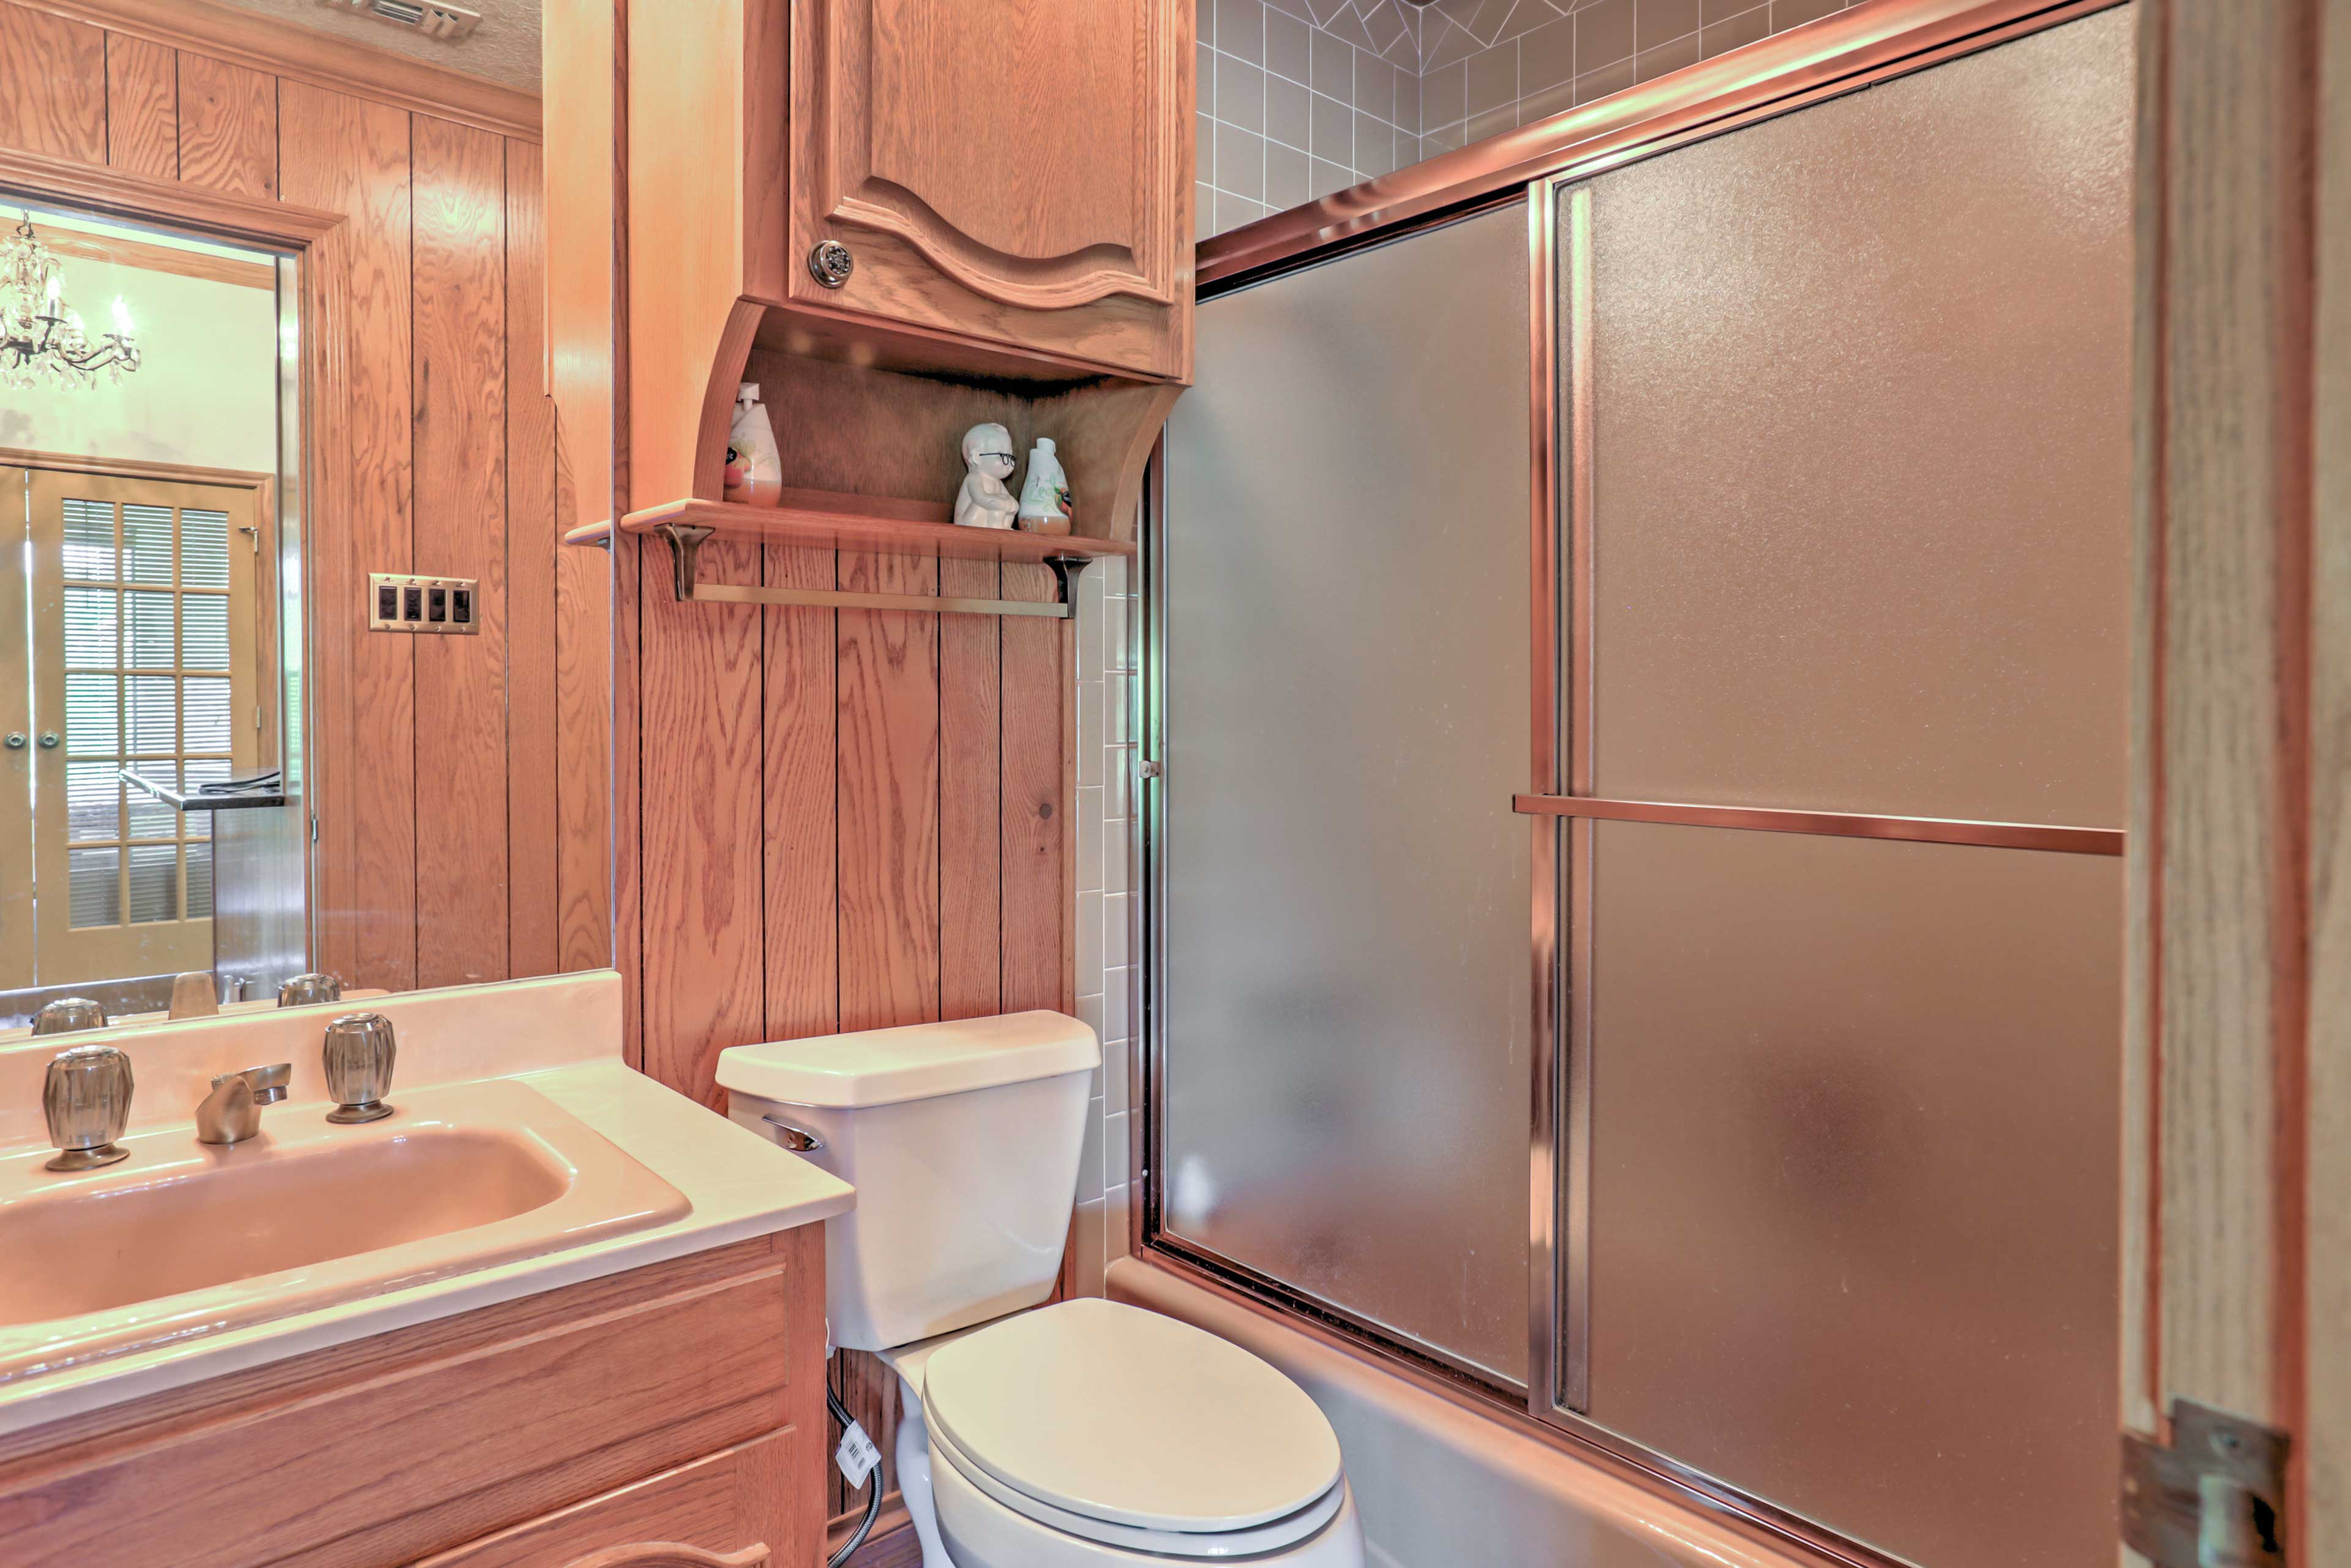 This home features 3 bathrooms for guests to use throughout their stay.